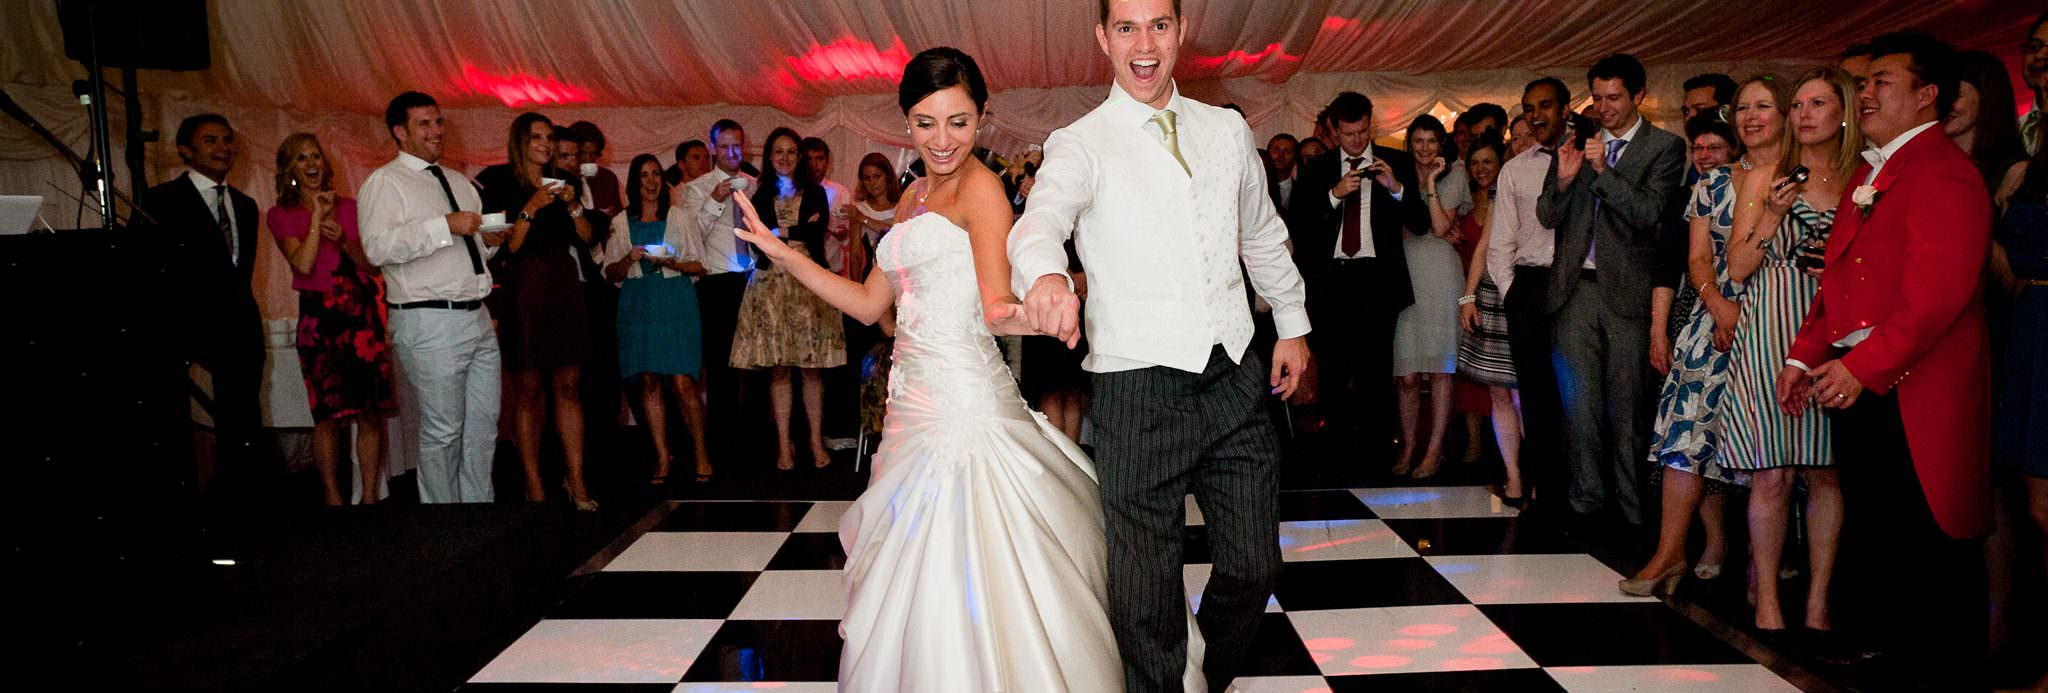 Kingston-Bagpuize-House-wedding-photos-24